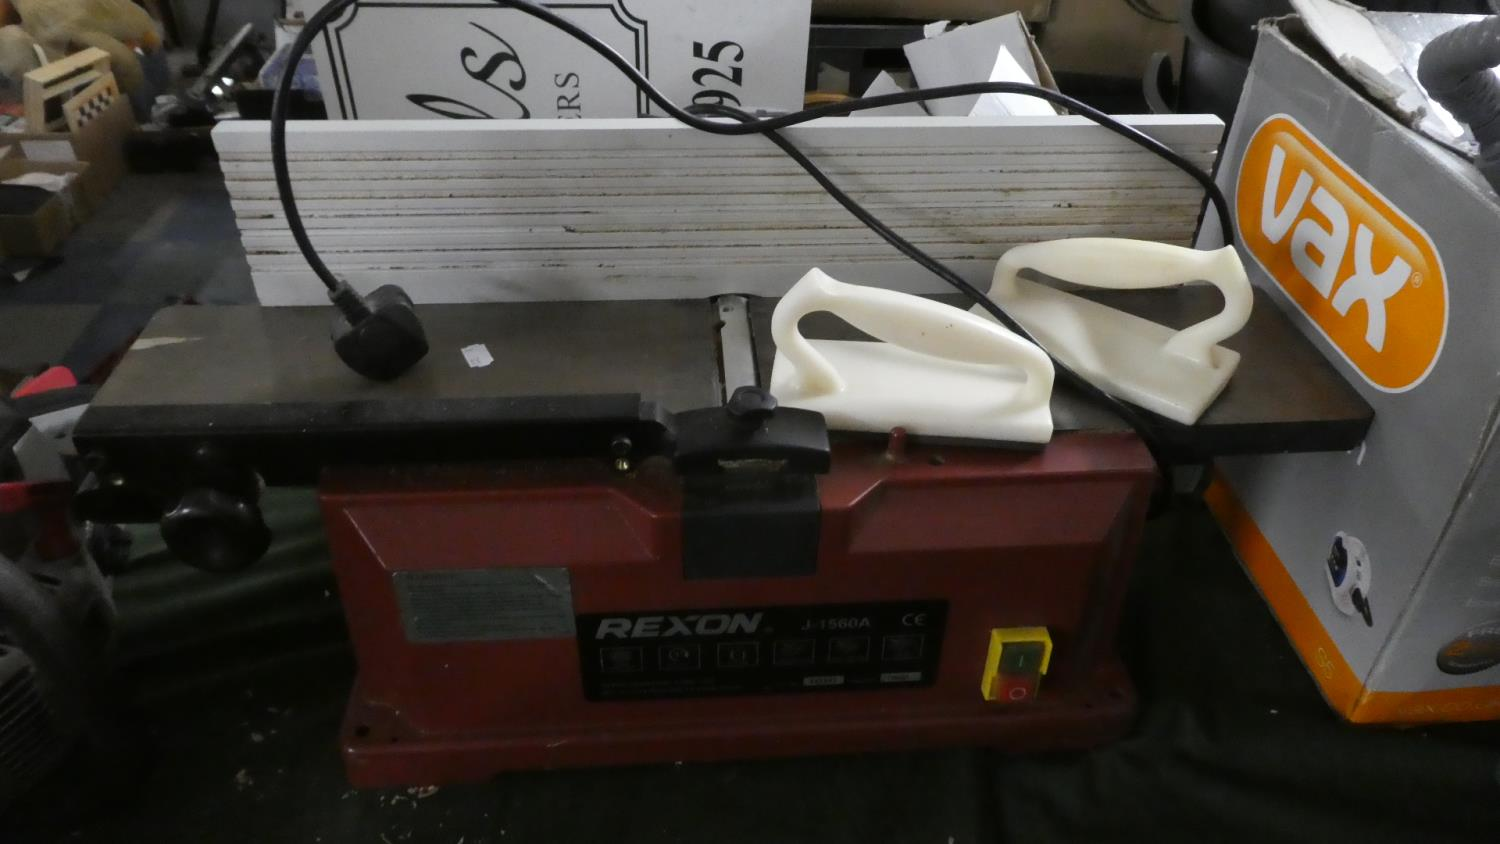 Lot 398 - A Rexon J1560A Electric Planing Machine